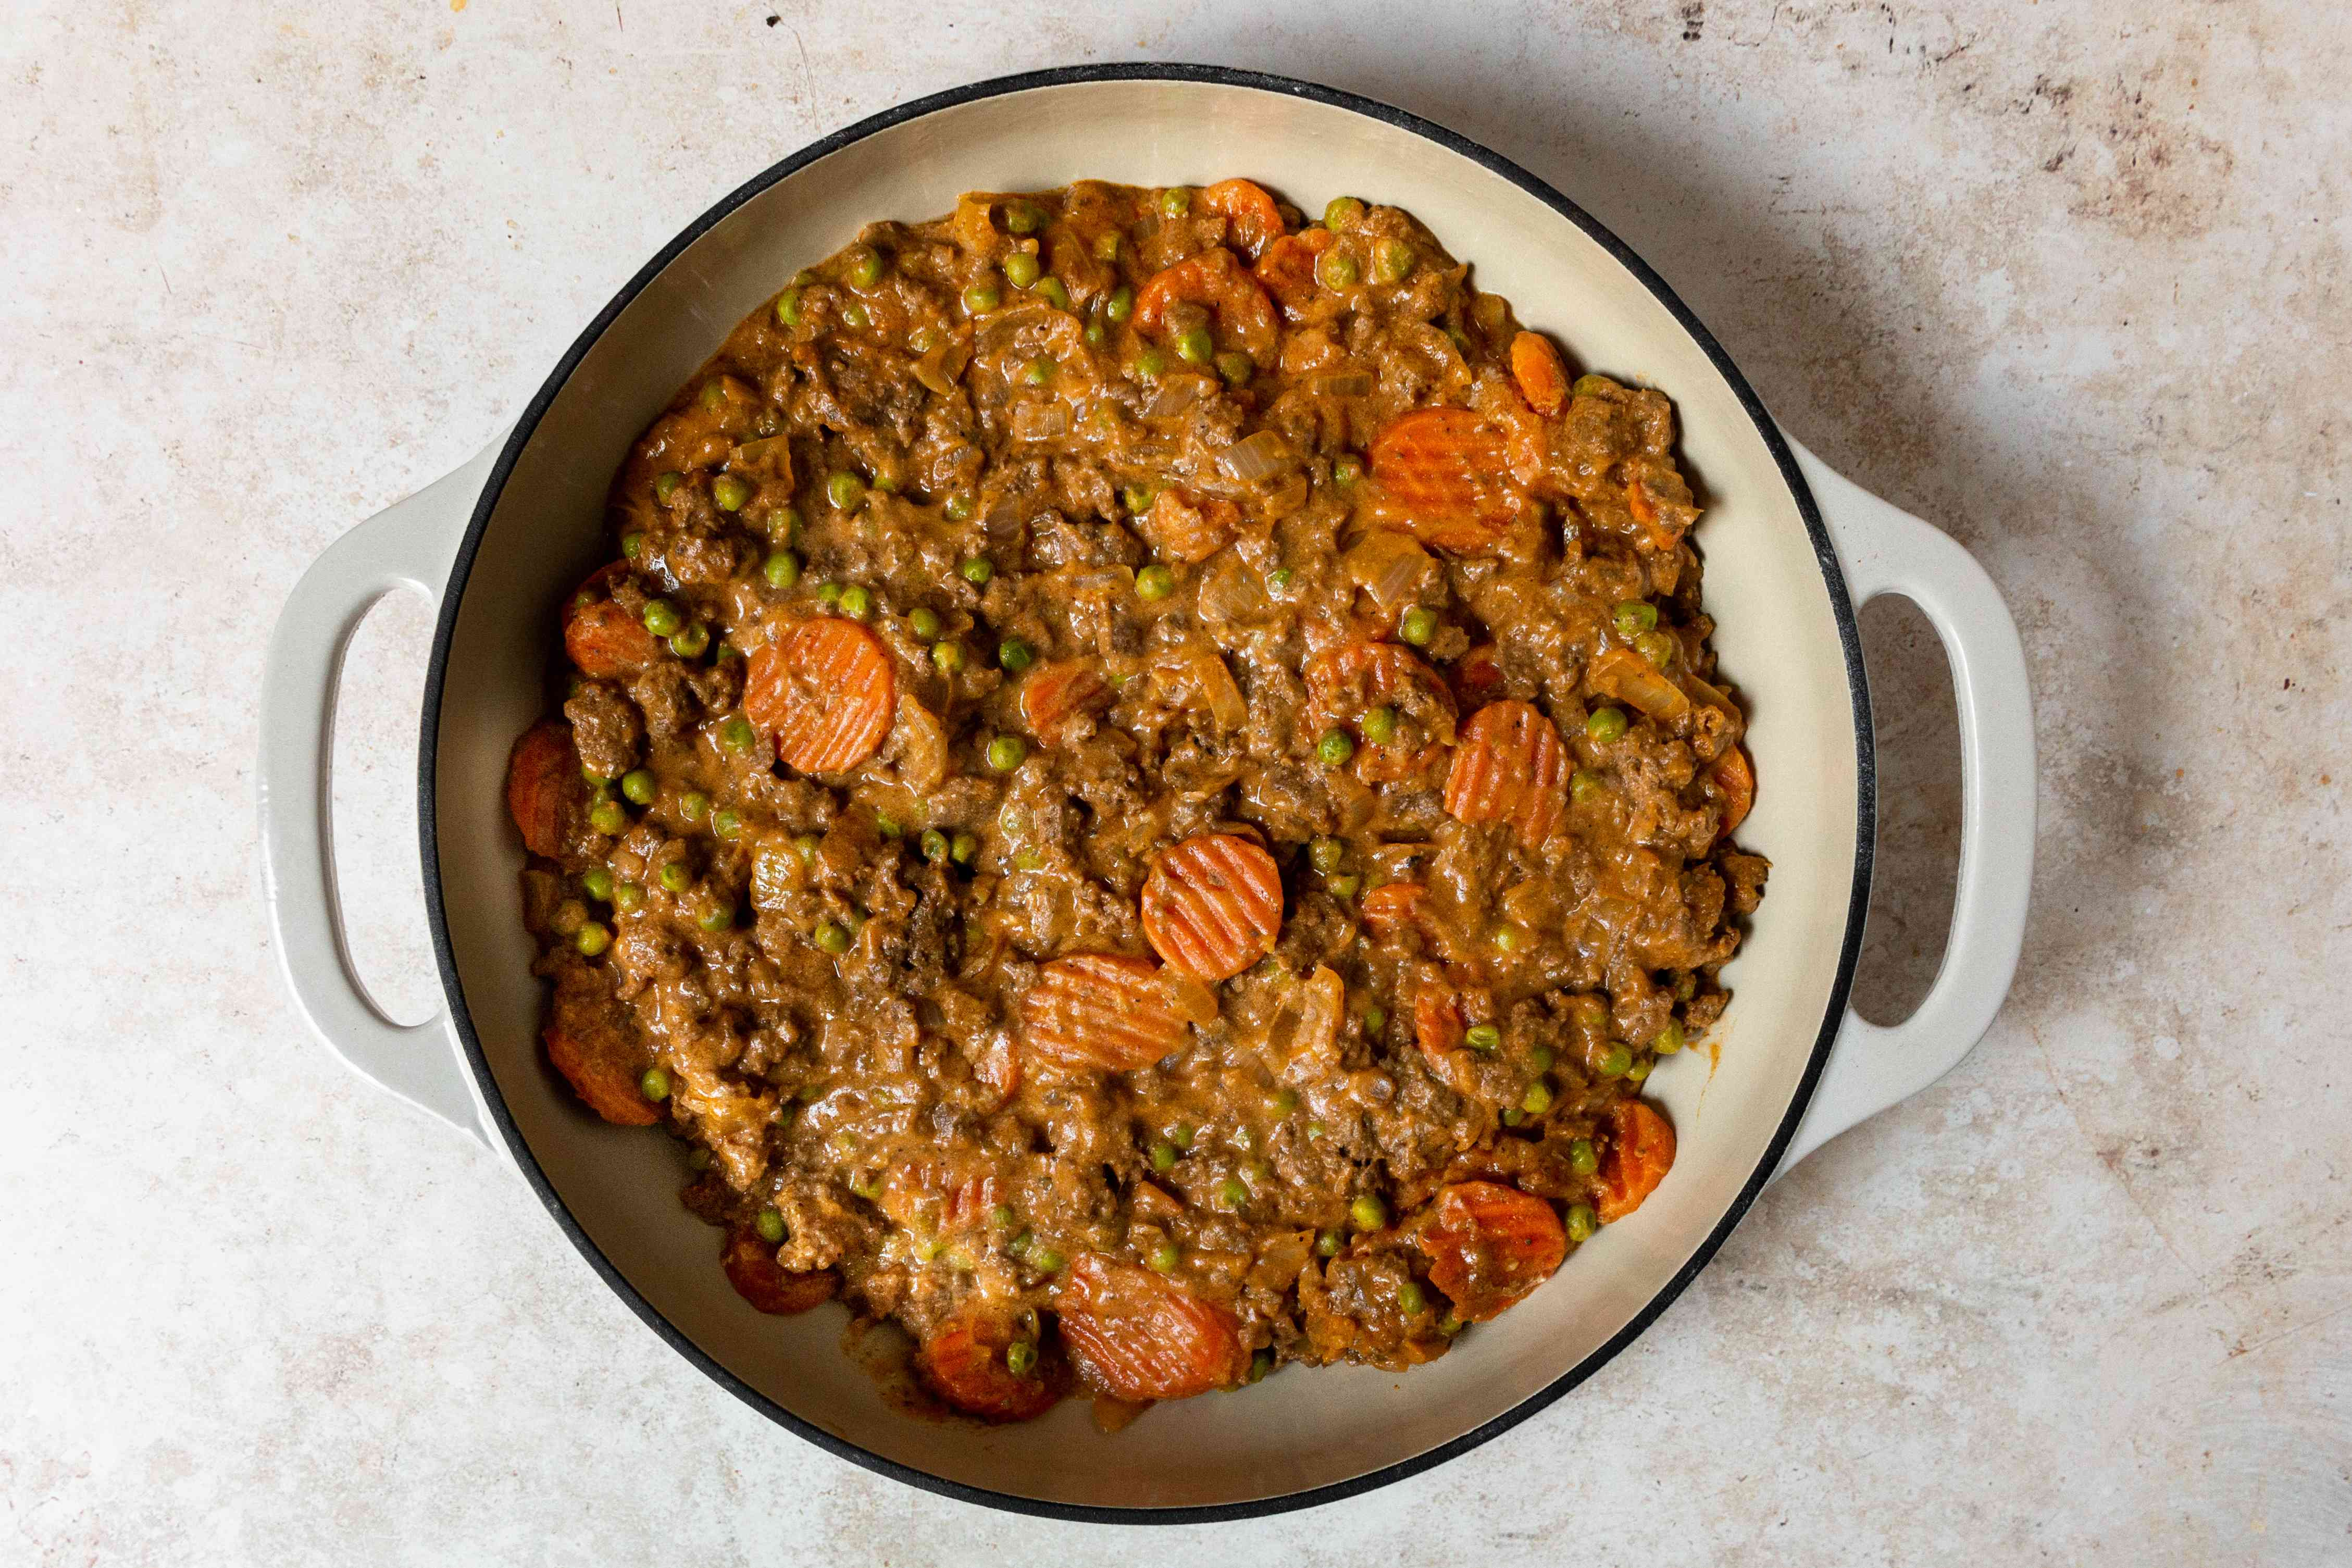 meat mixture in a pan